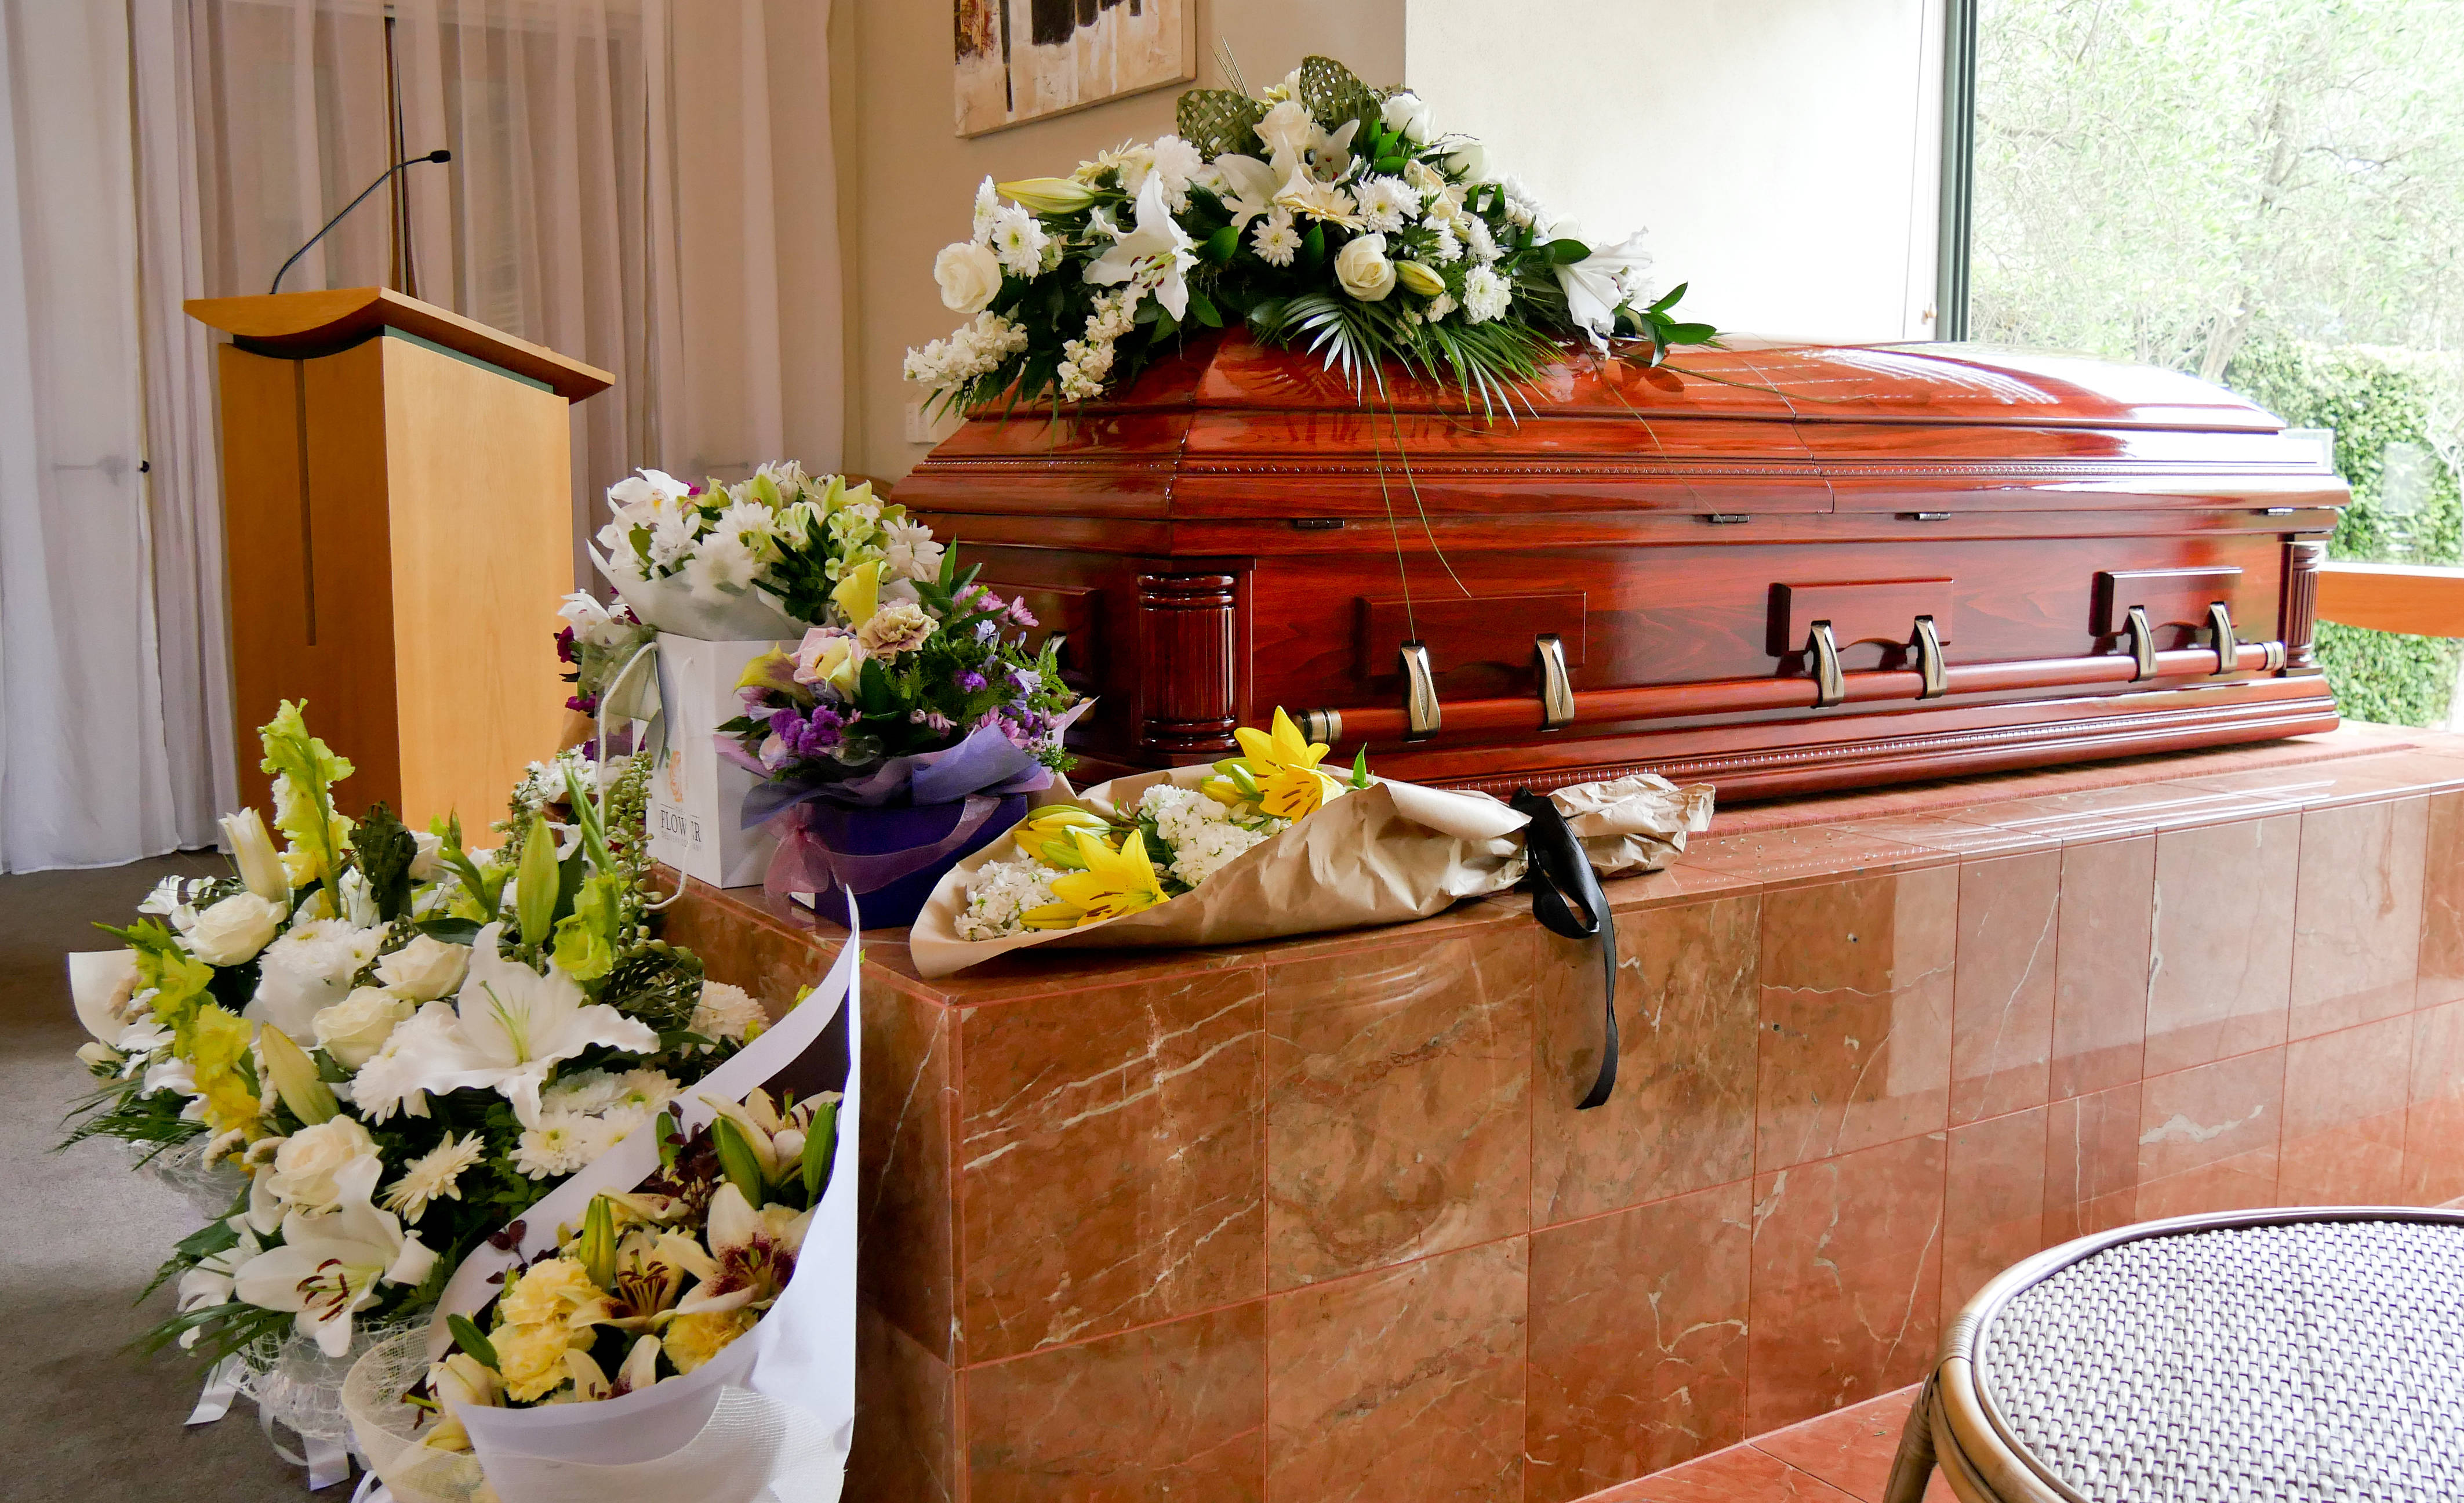 Flowers with a coffin